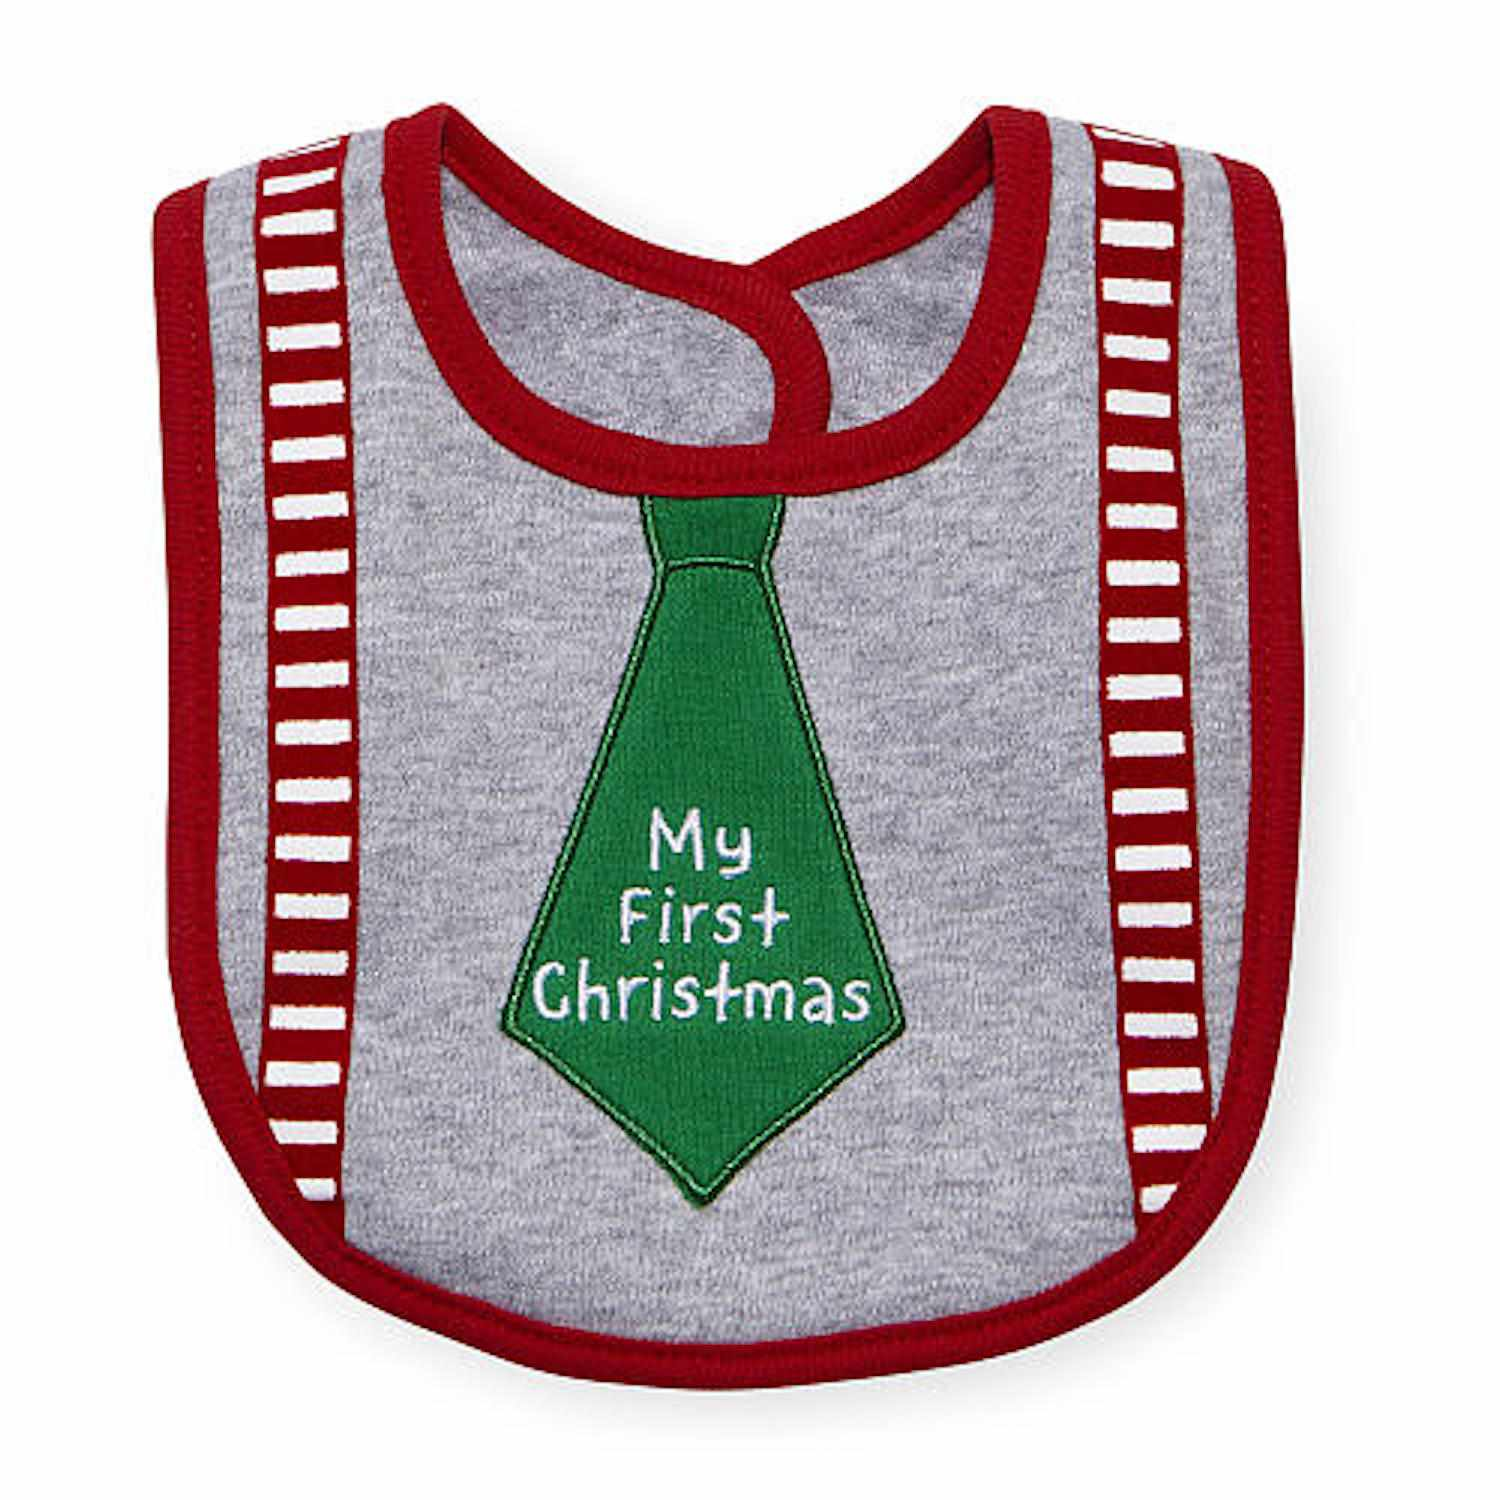 2e678c905379a 20 Adorable Baby s First Christmas Outfits